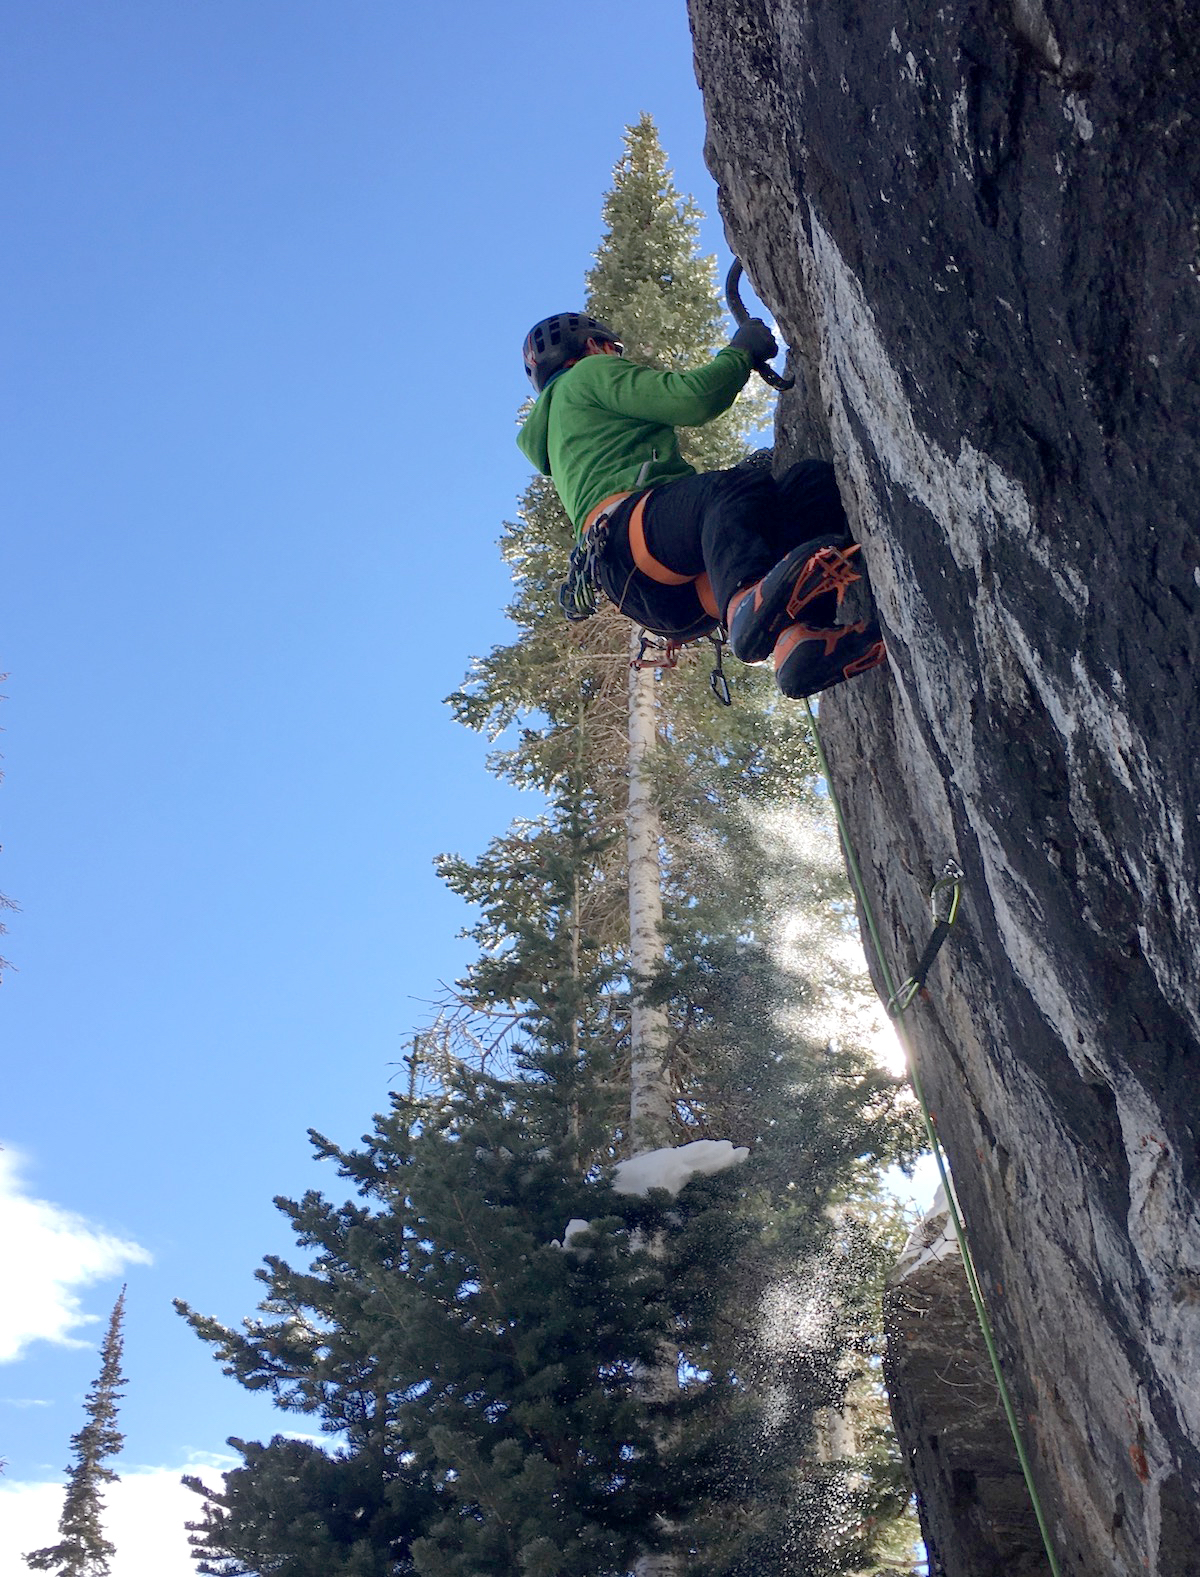 Chris Van Leuven testing the new Petzl Nomic ice tools in Rocky Mountain National Park. [Photo] Colby Rickard